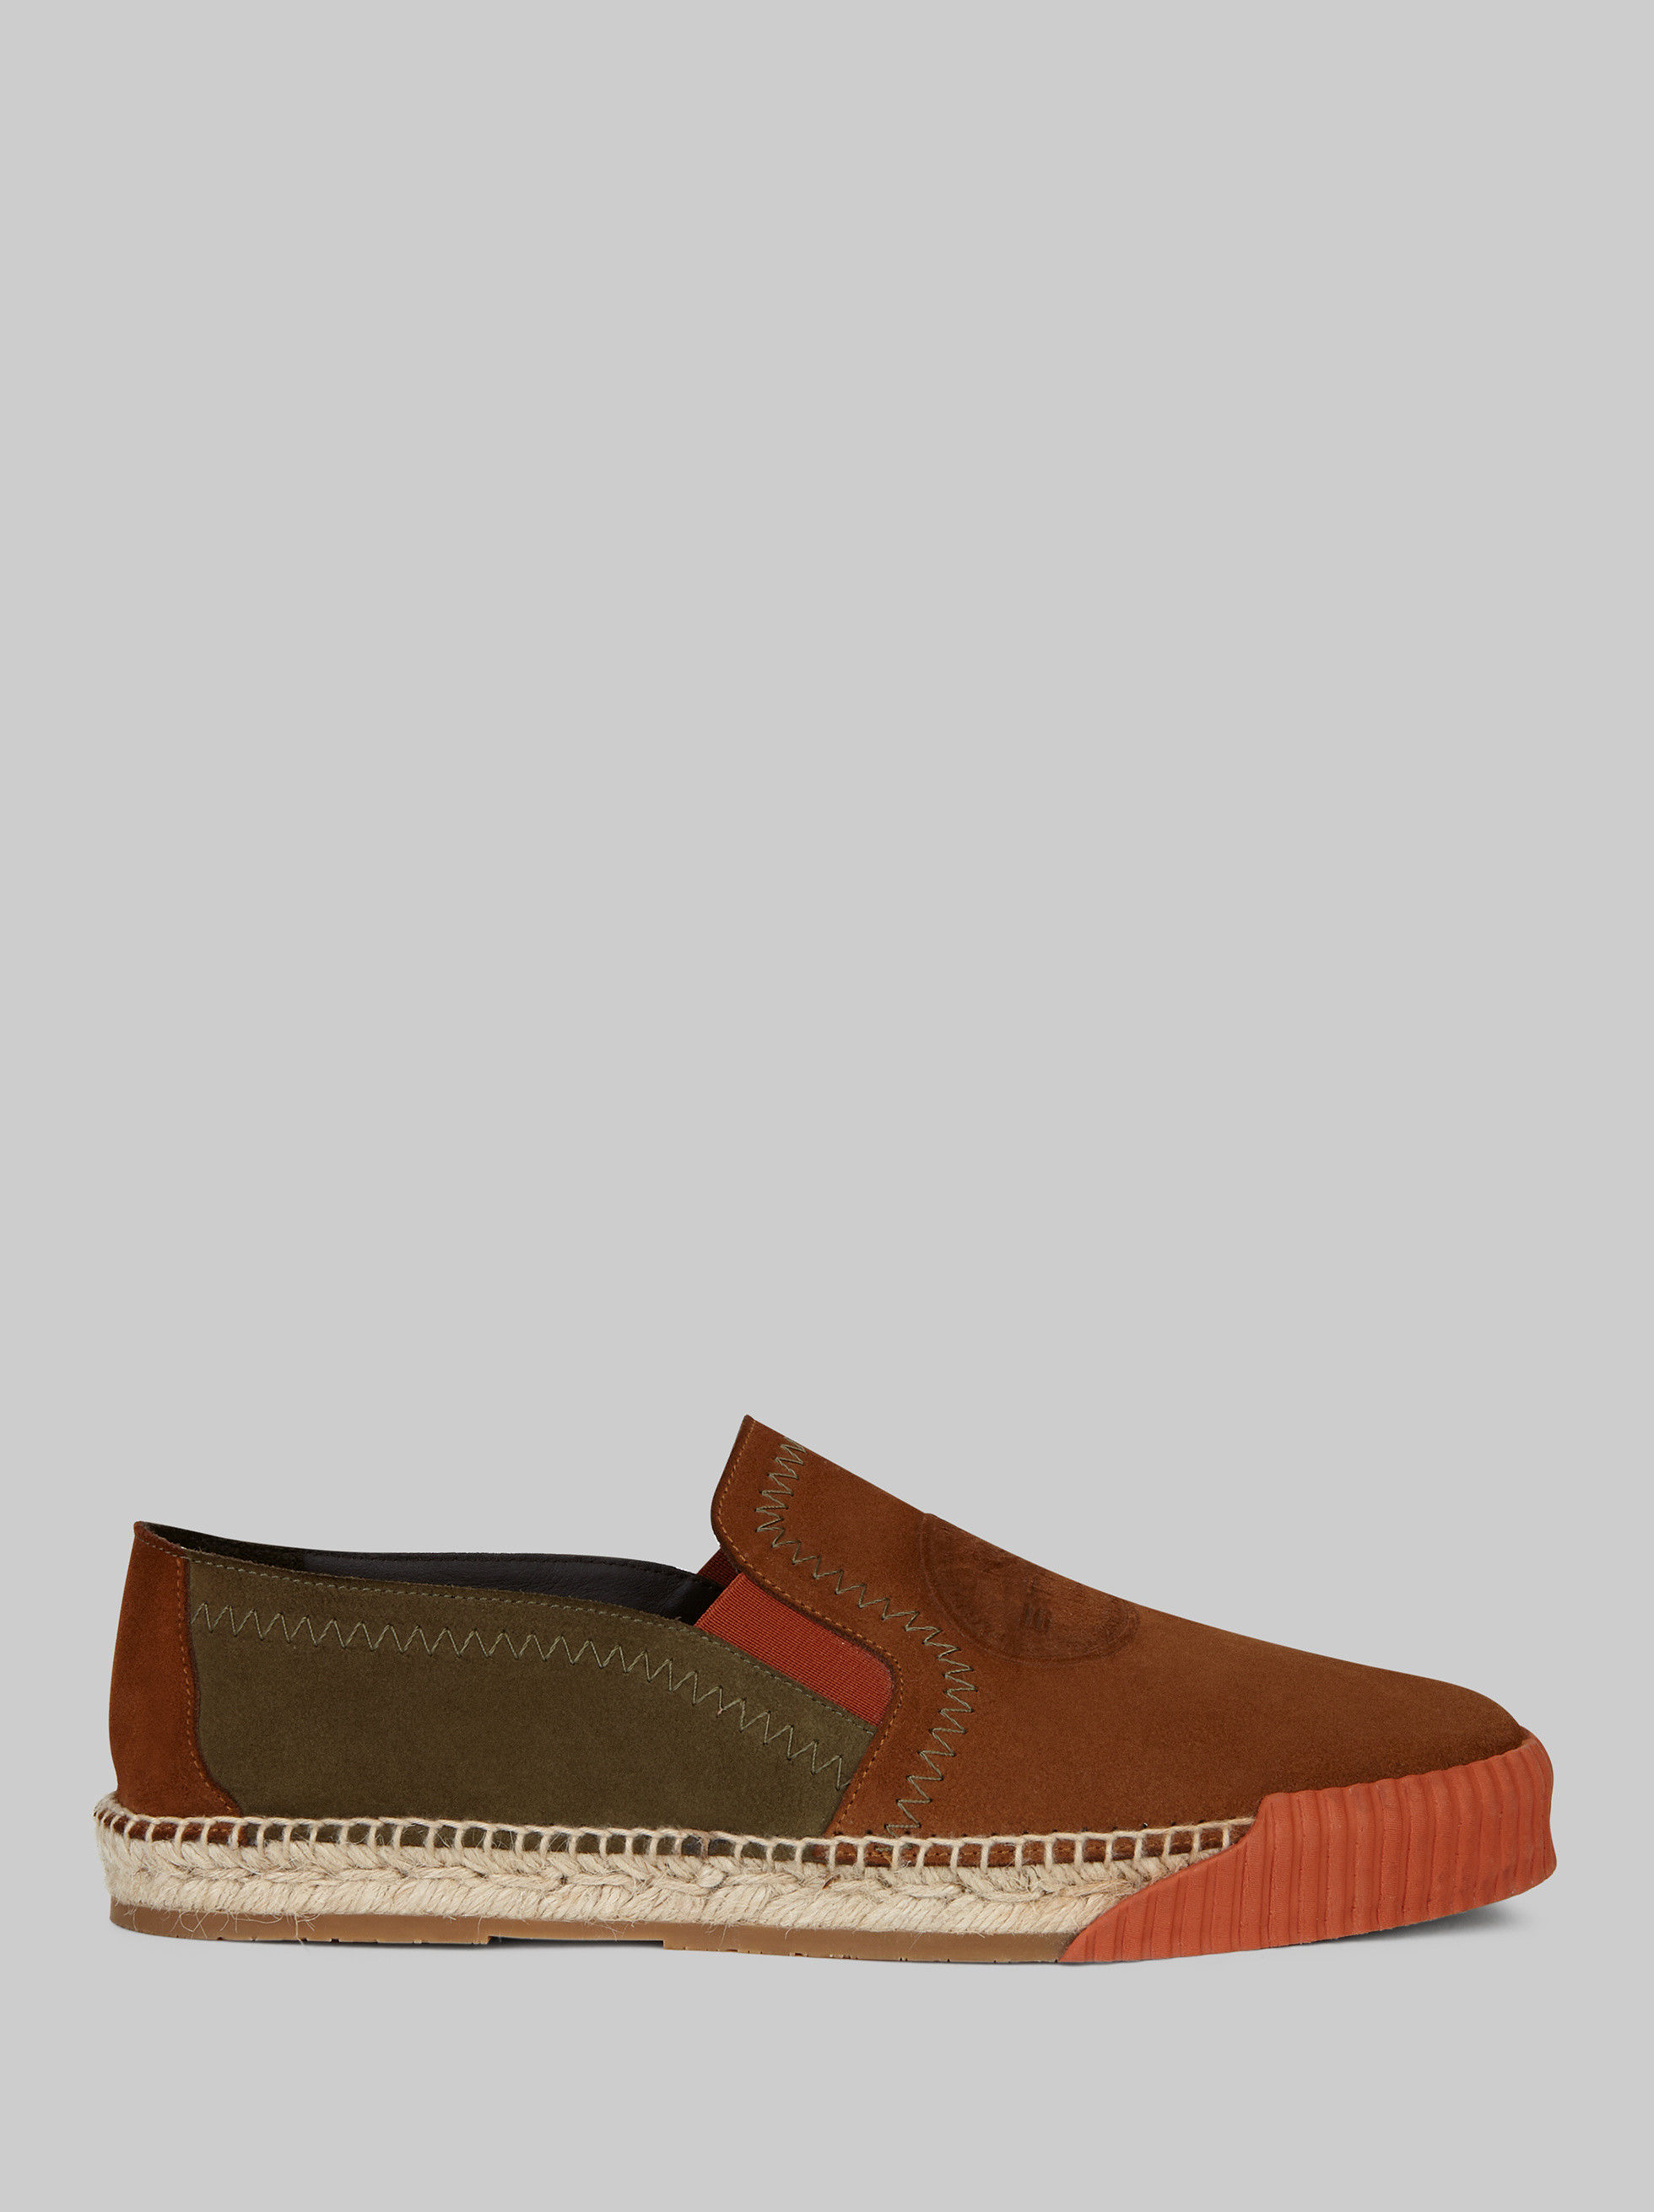 SUEDE SLIP-ON ESPADRILLES WITH LOGO